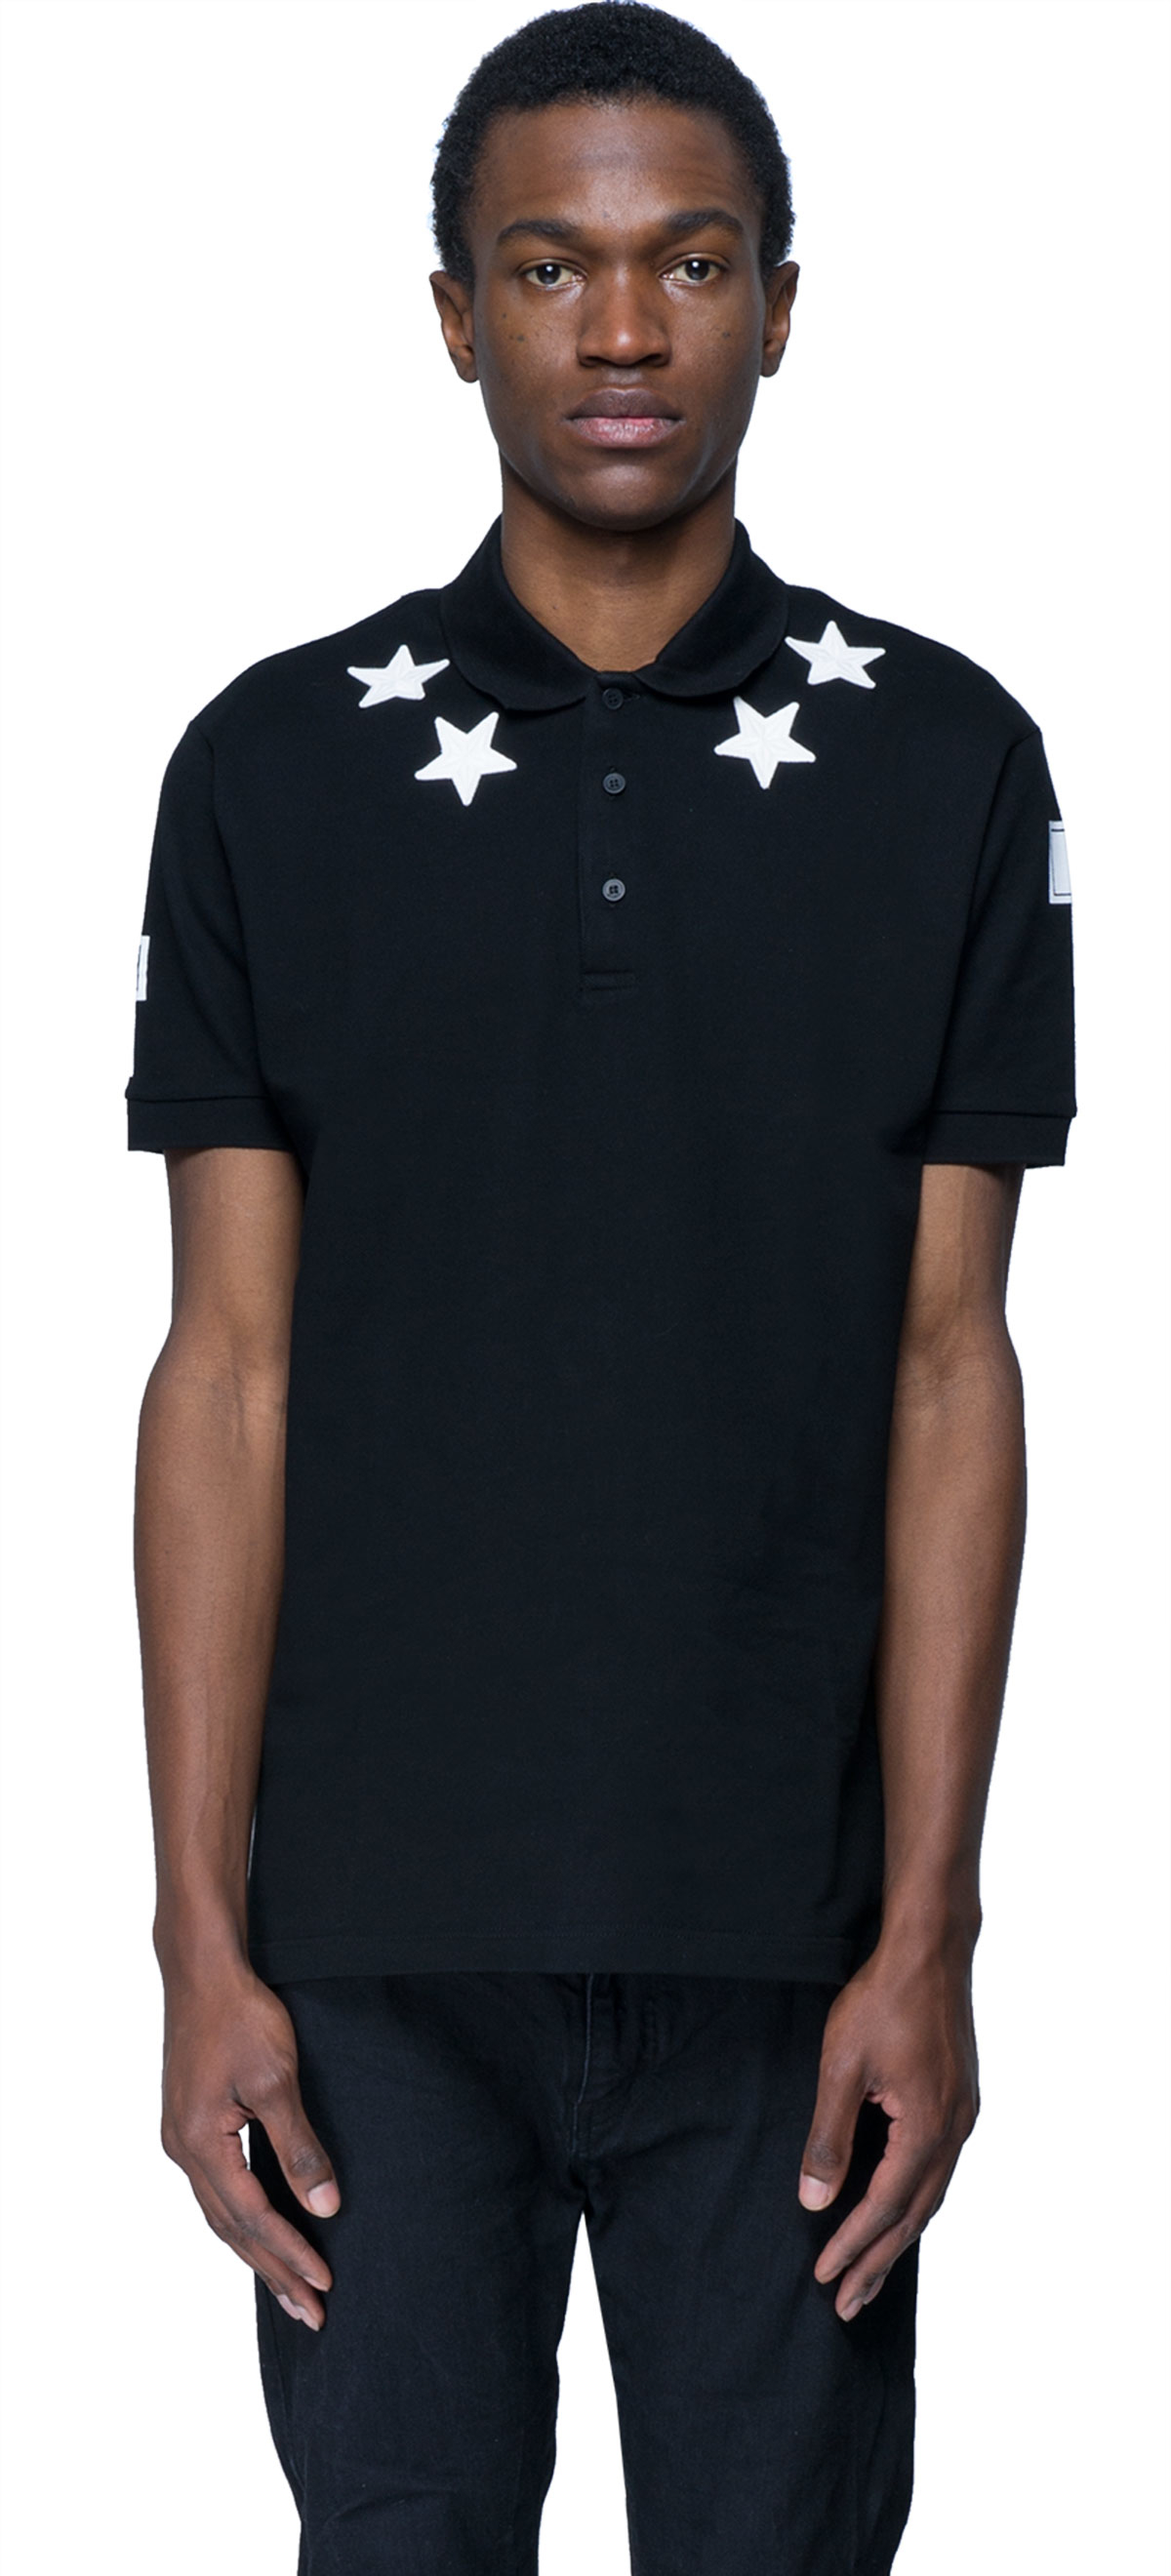 Givenchy number print t shirt in black for men lyst for Givenchy t shirt man